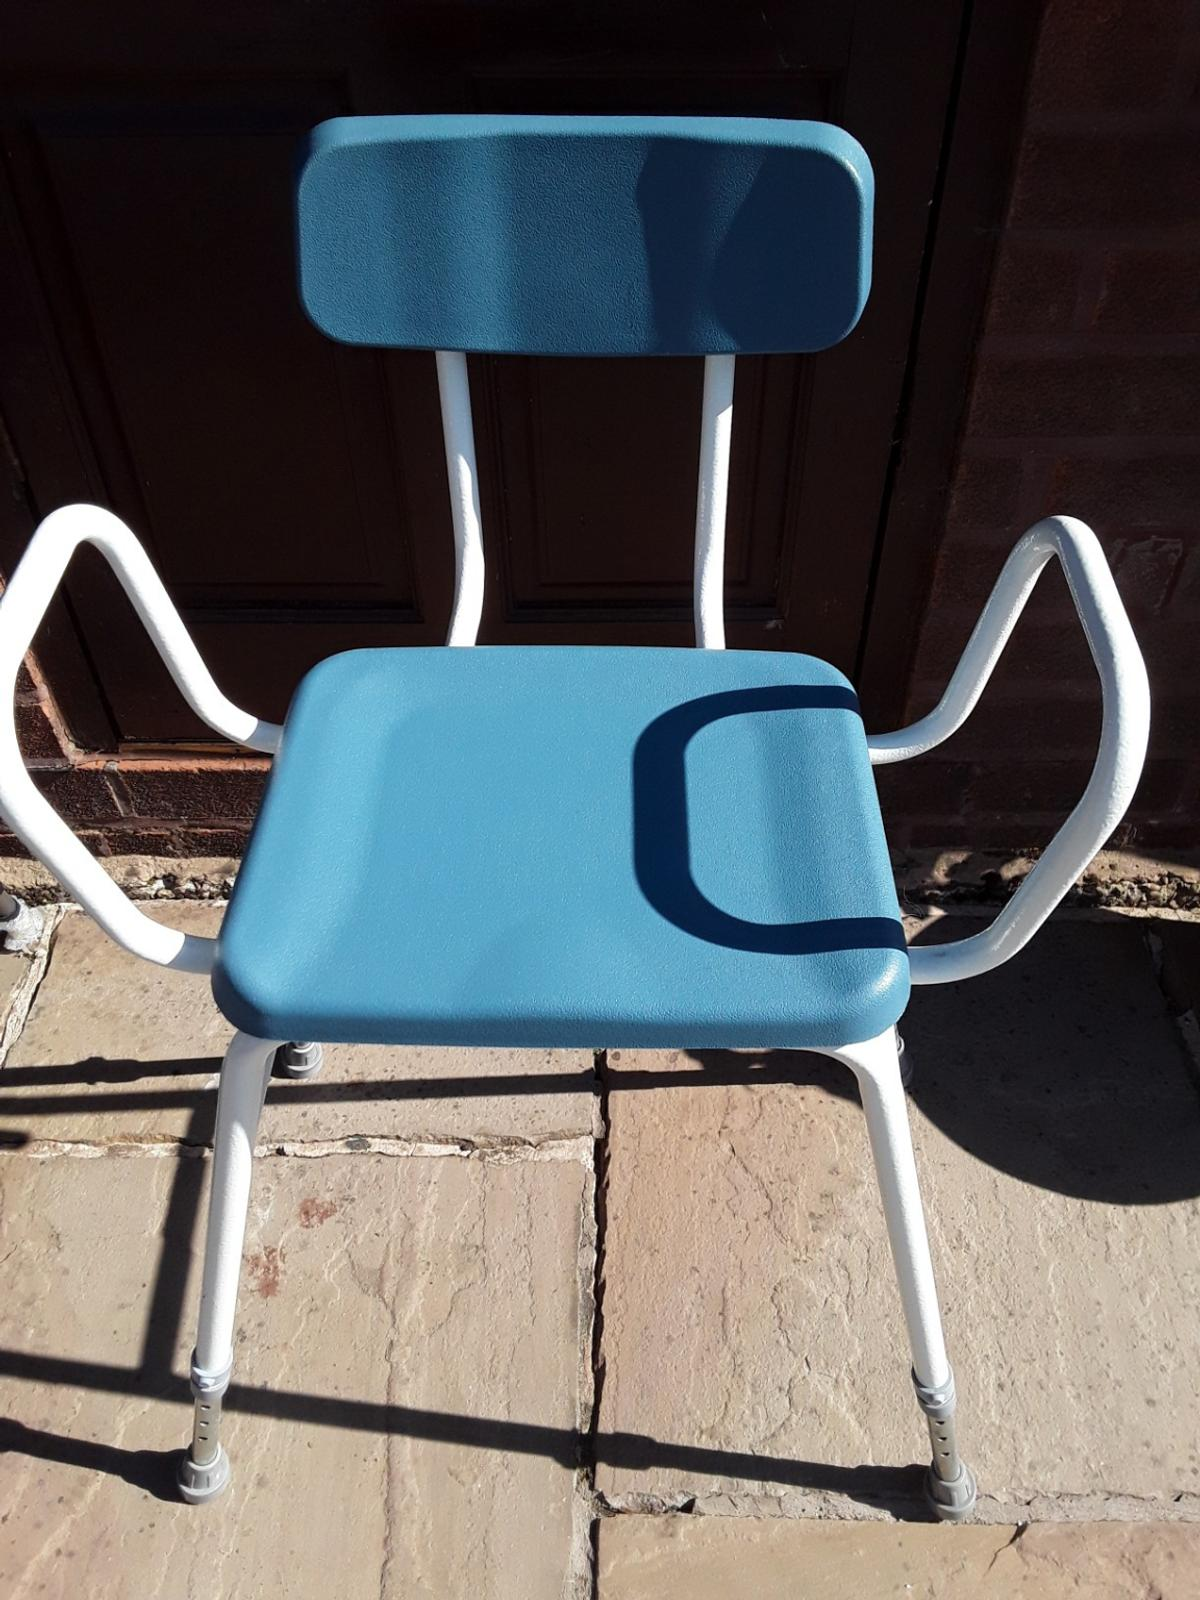 padded seat and extendable legs collection only Radcliffe m26 3wf lancs